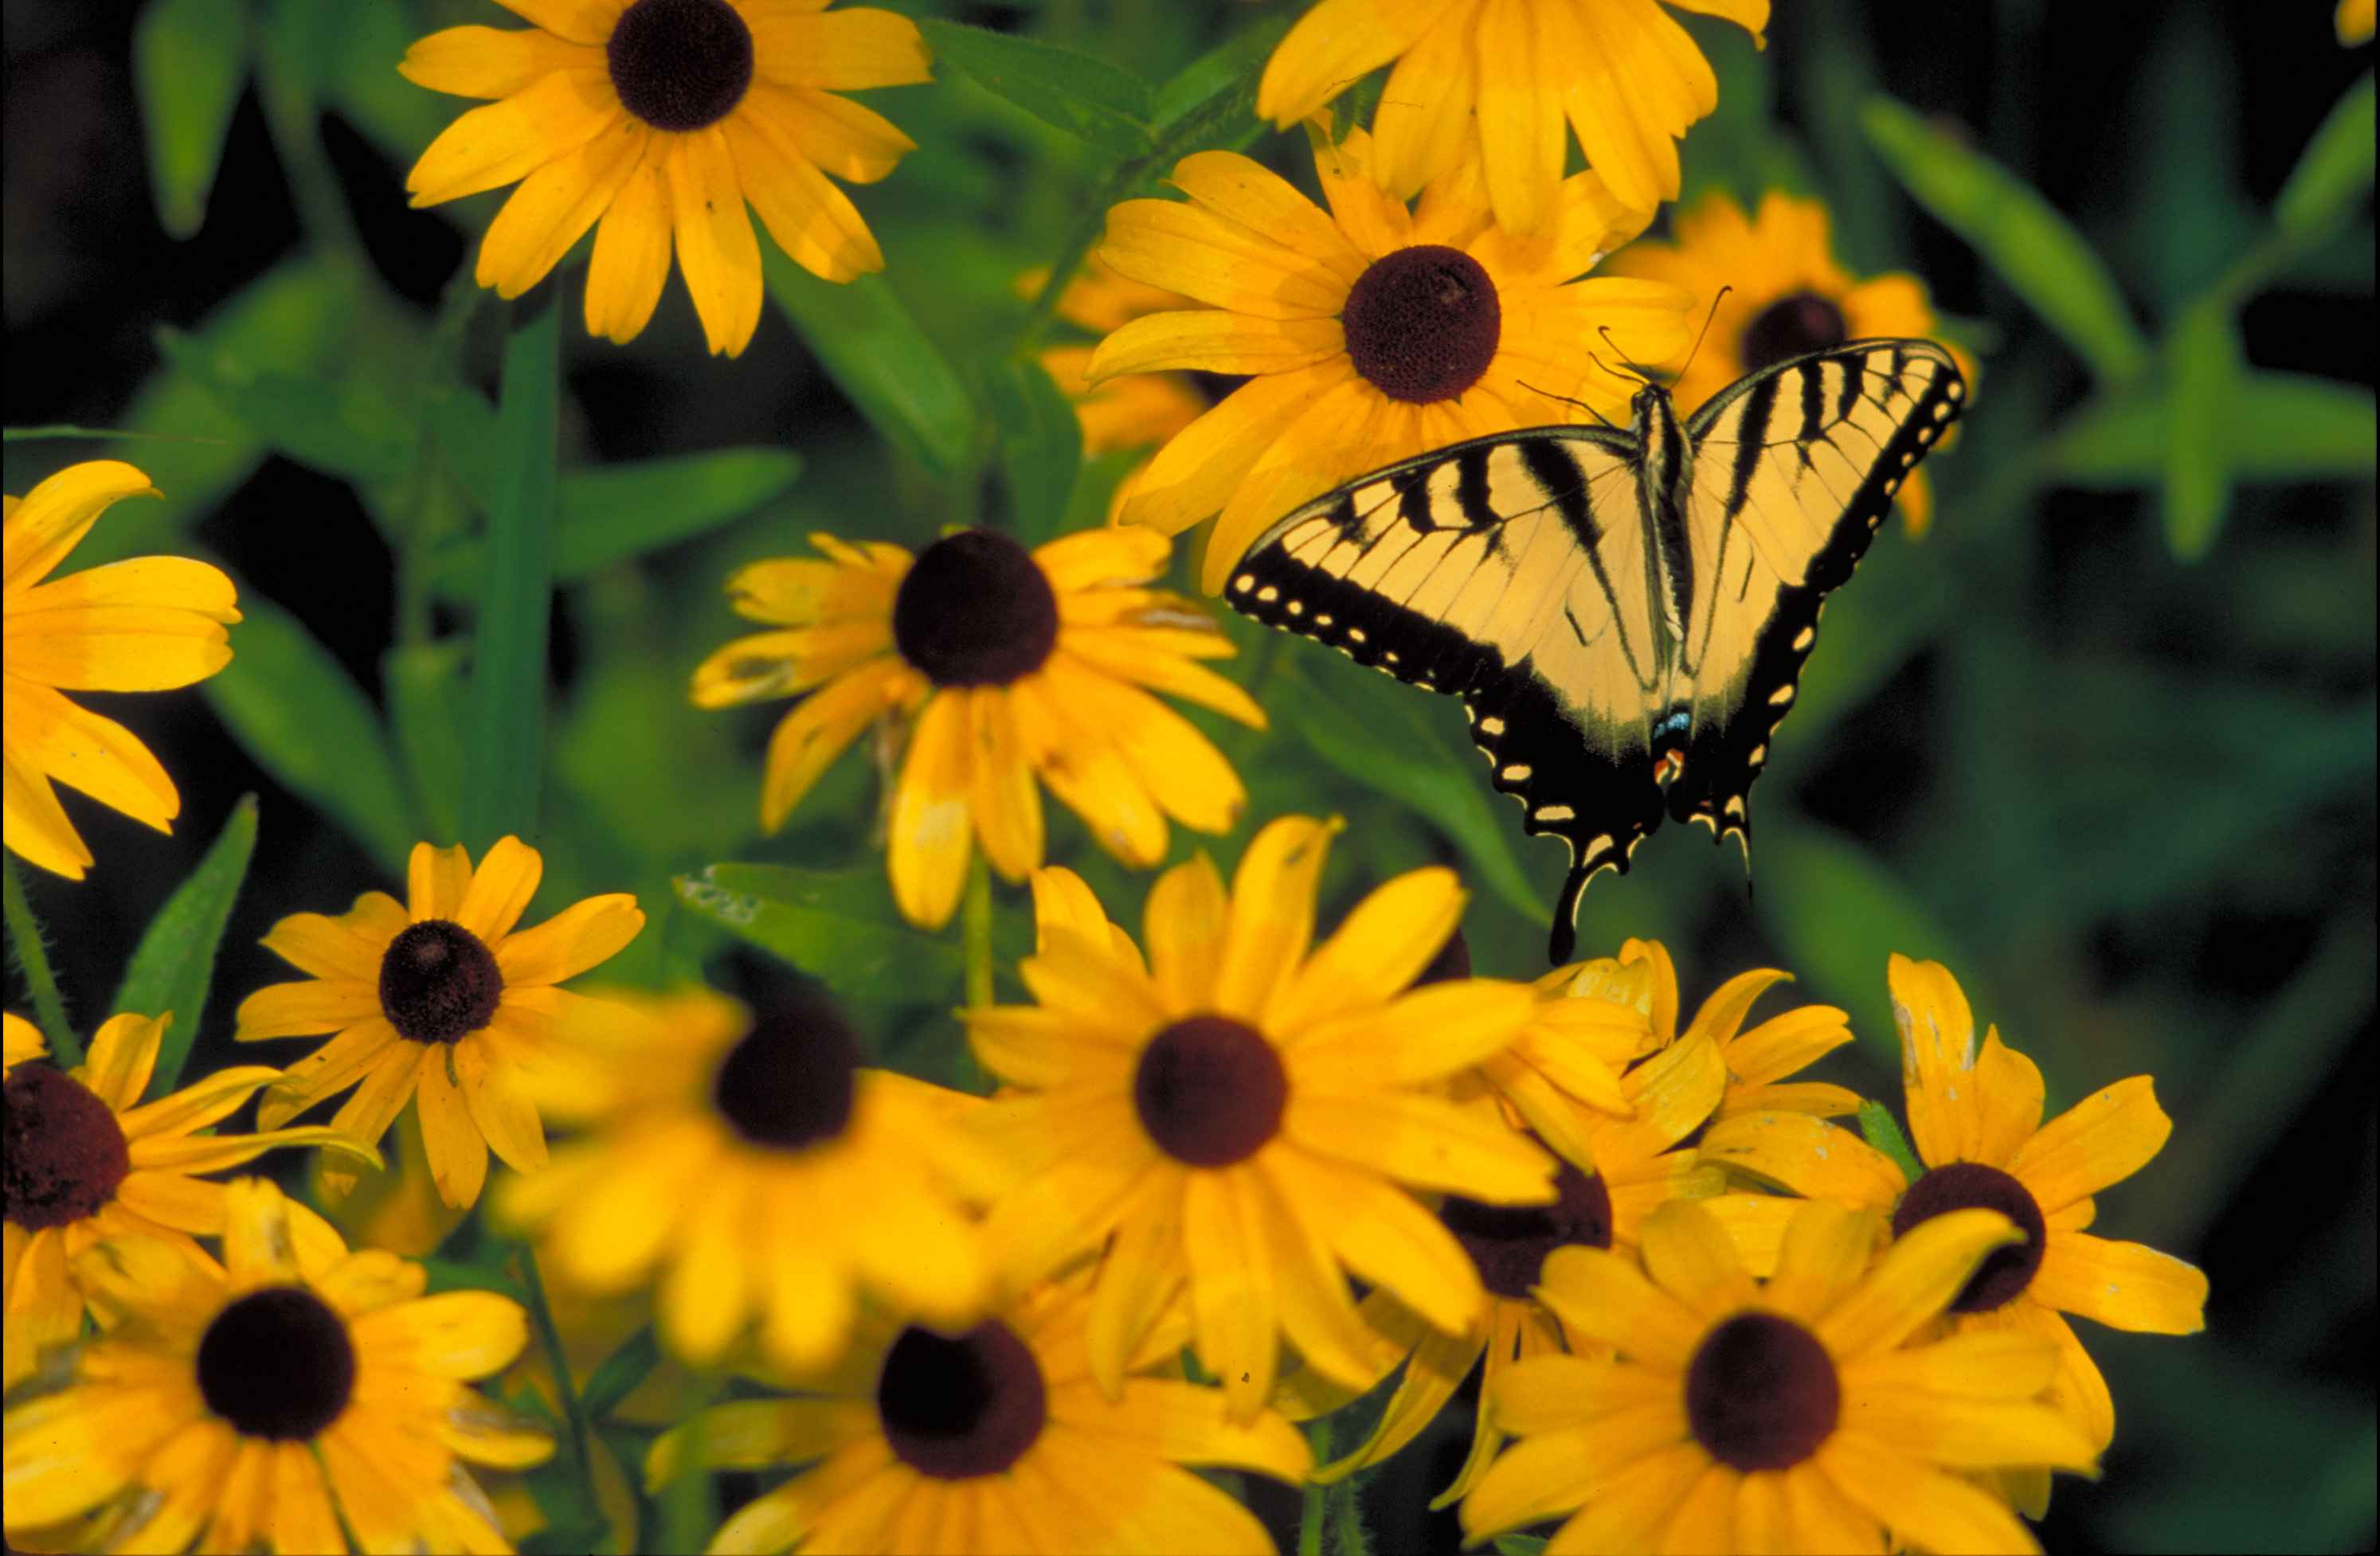 file yellow butterfly with black tiger stripes on wings sitting